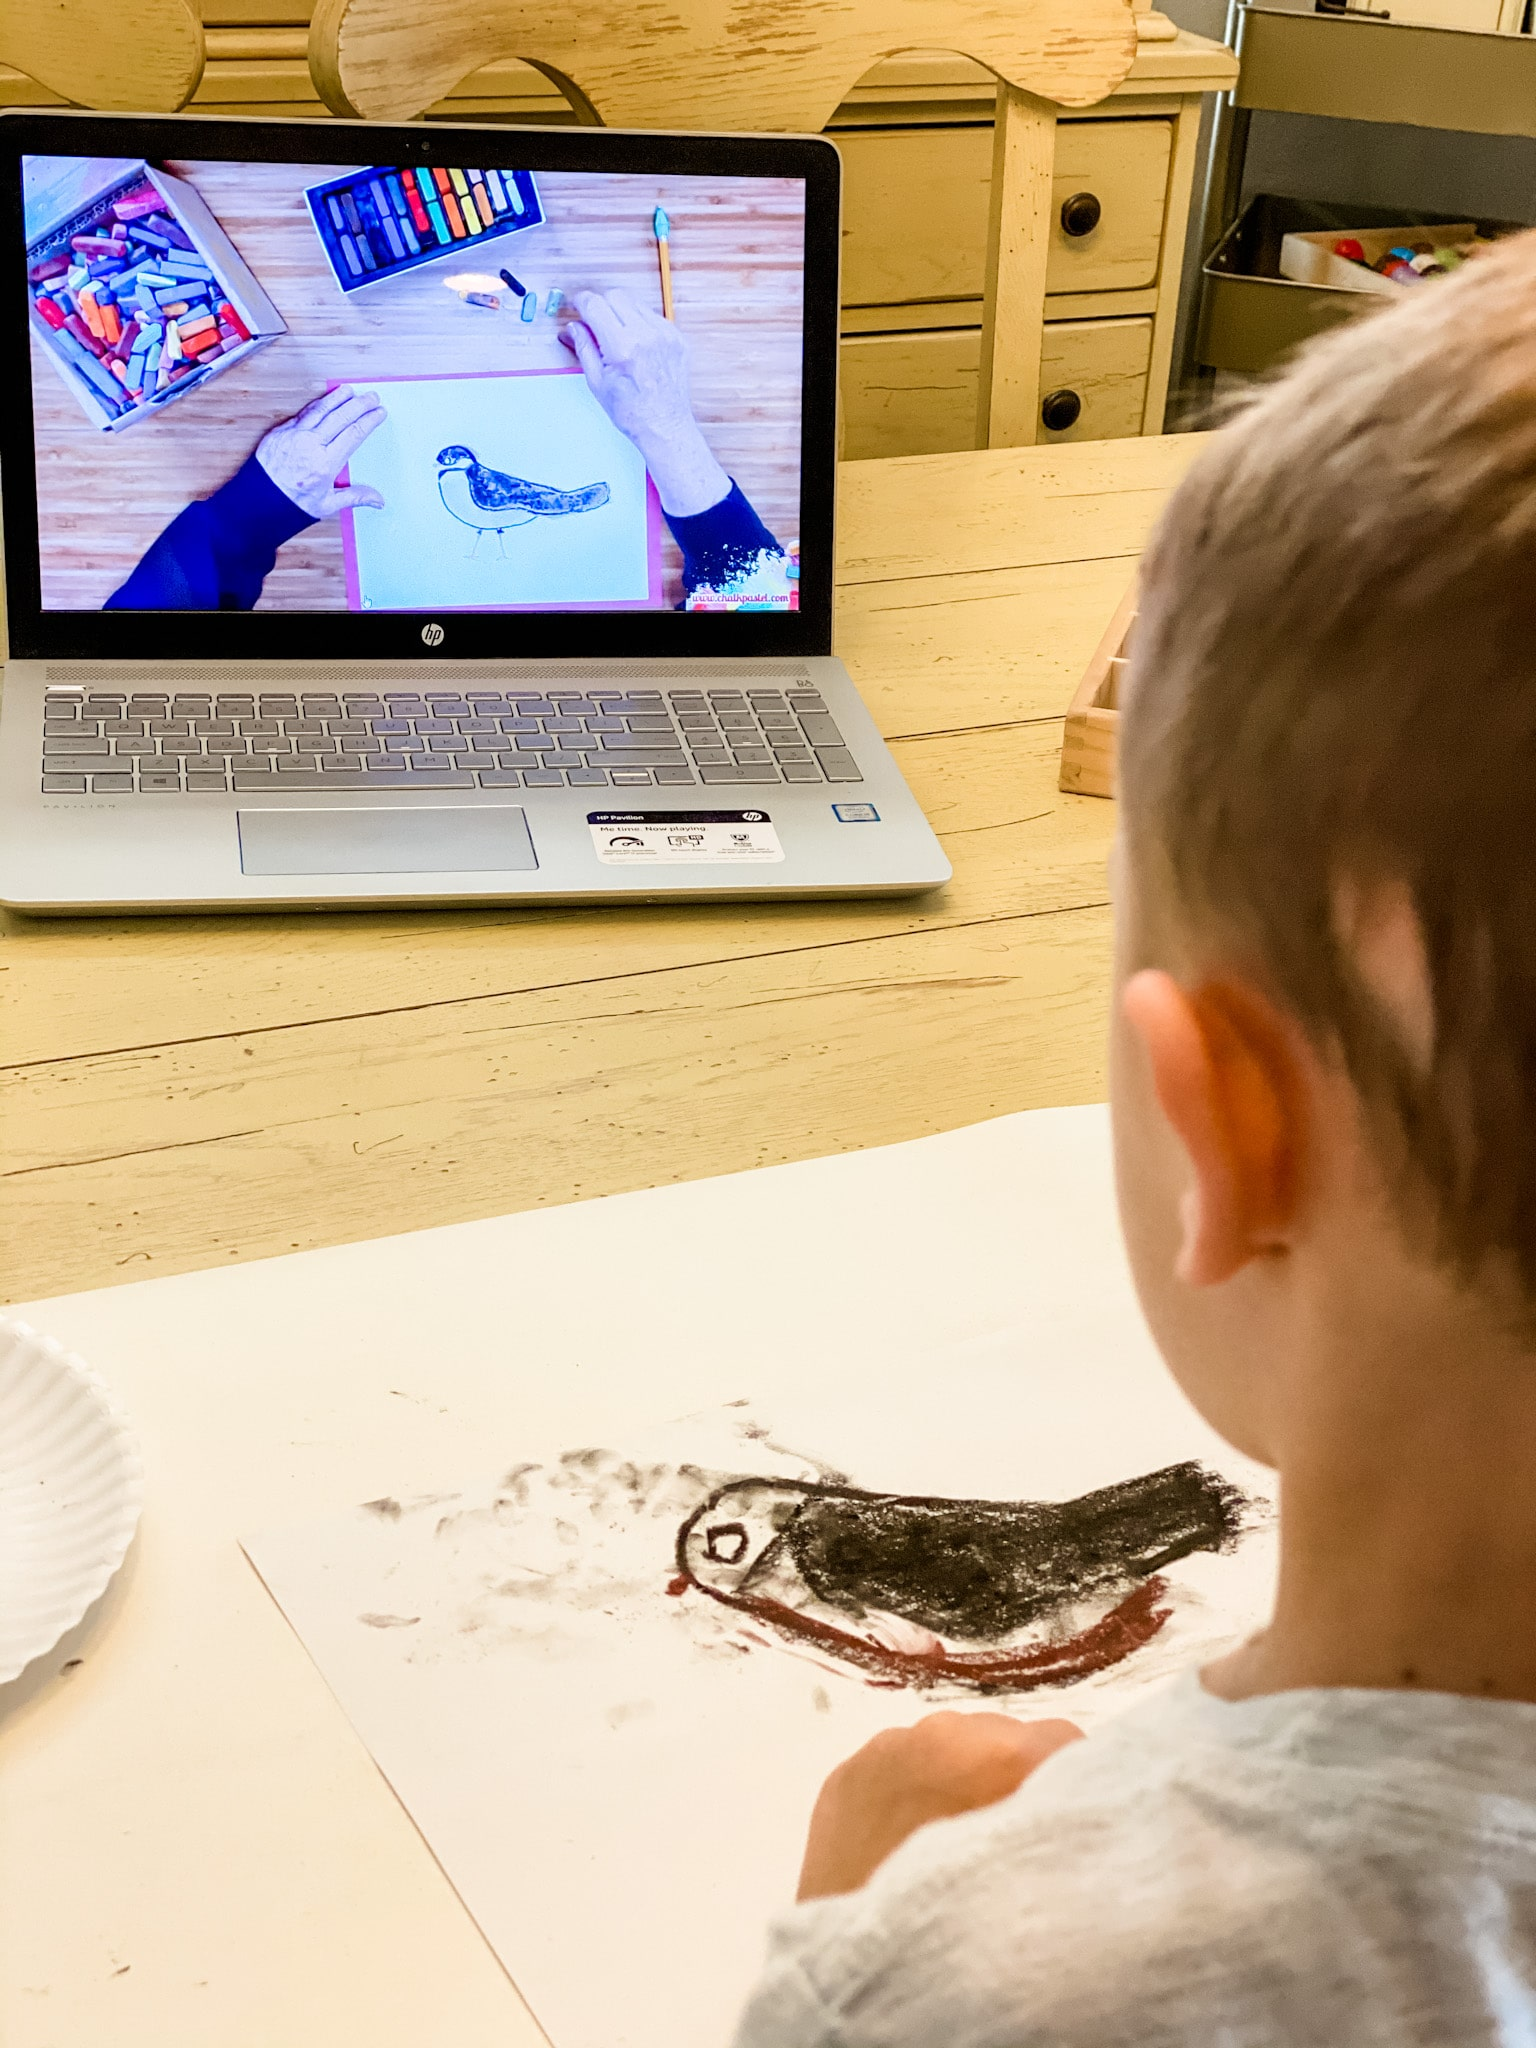 Use themes along with art to drive a lesson home. Research tells us that children are more likely to remember a lesson when a hands-on activity is included. With I Drew It And I Knew It, you can pair up a homeschool history lesson, for example, and make it so much more exciting.